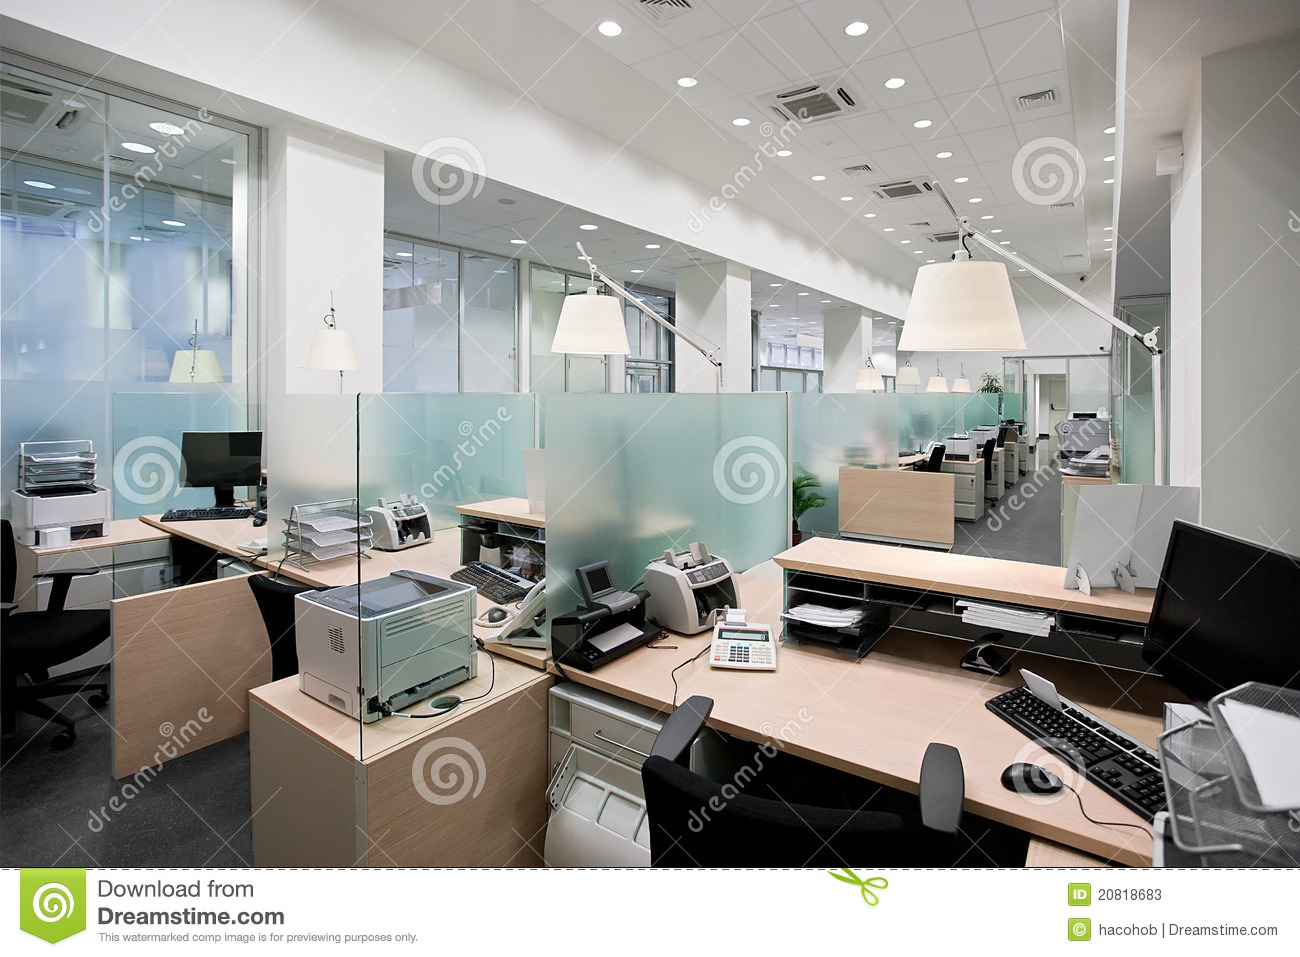 Bank Office Stock Photos - Image: 20818683